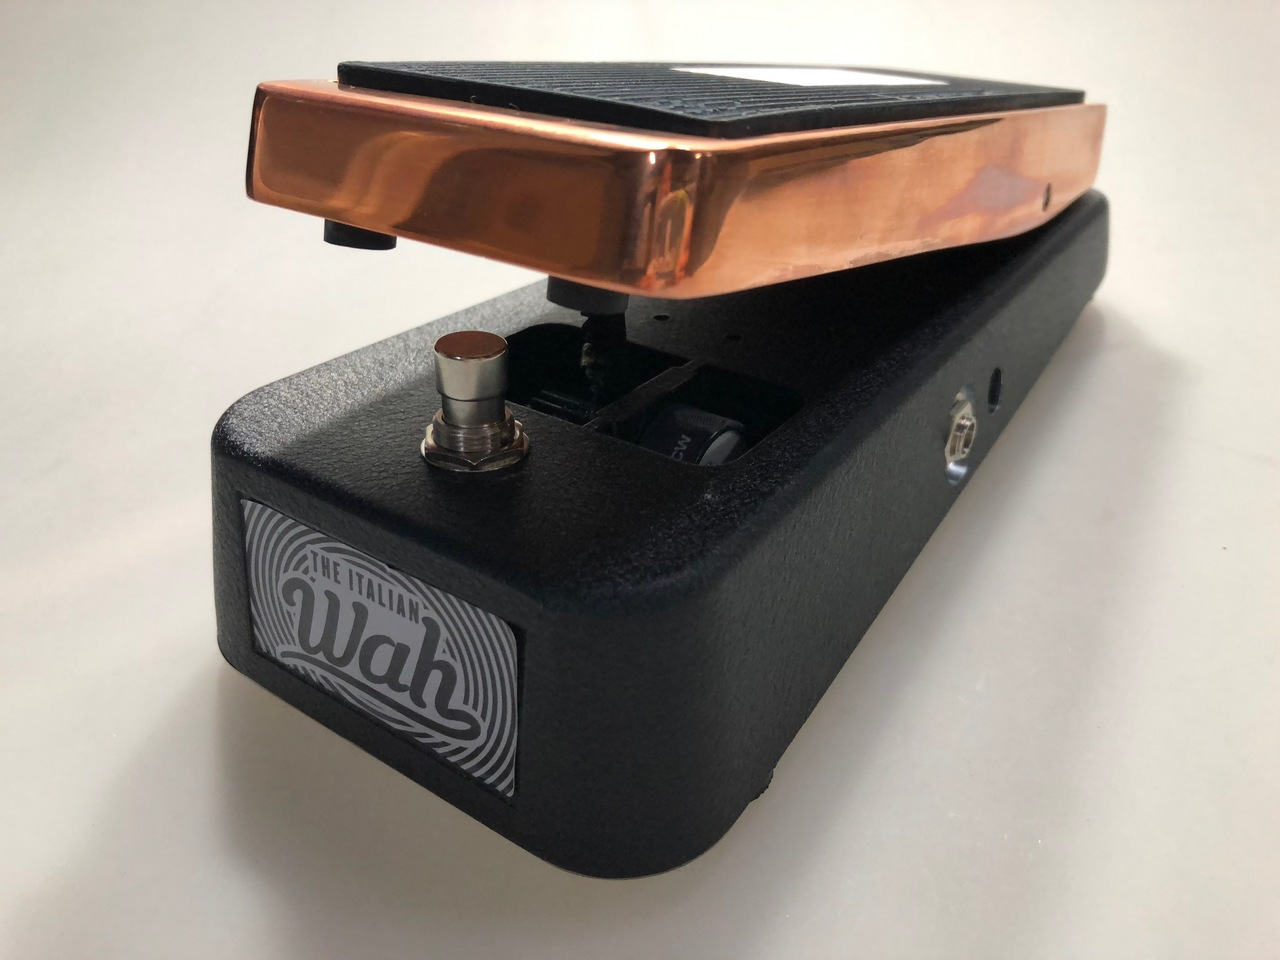 LAA Custom The Italian Wah